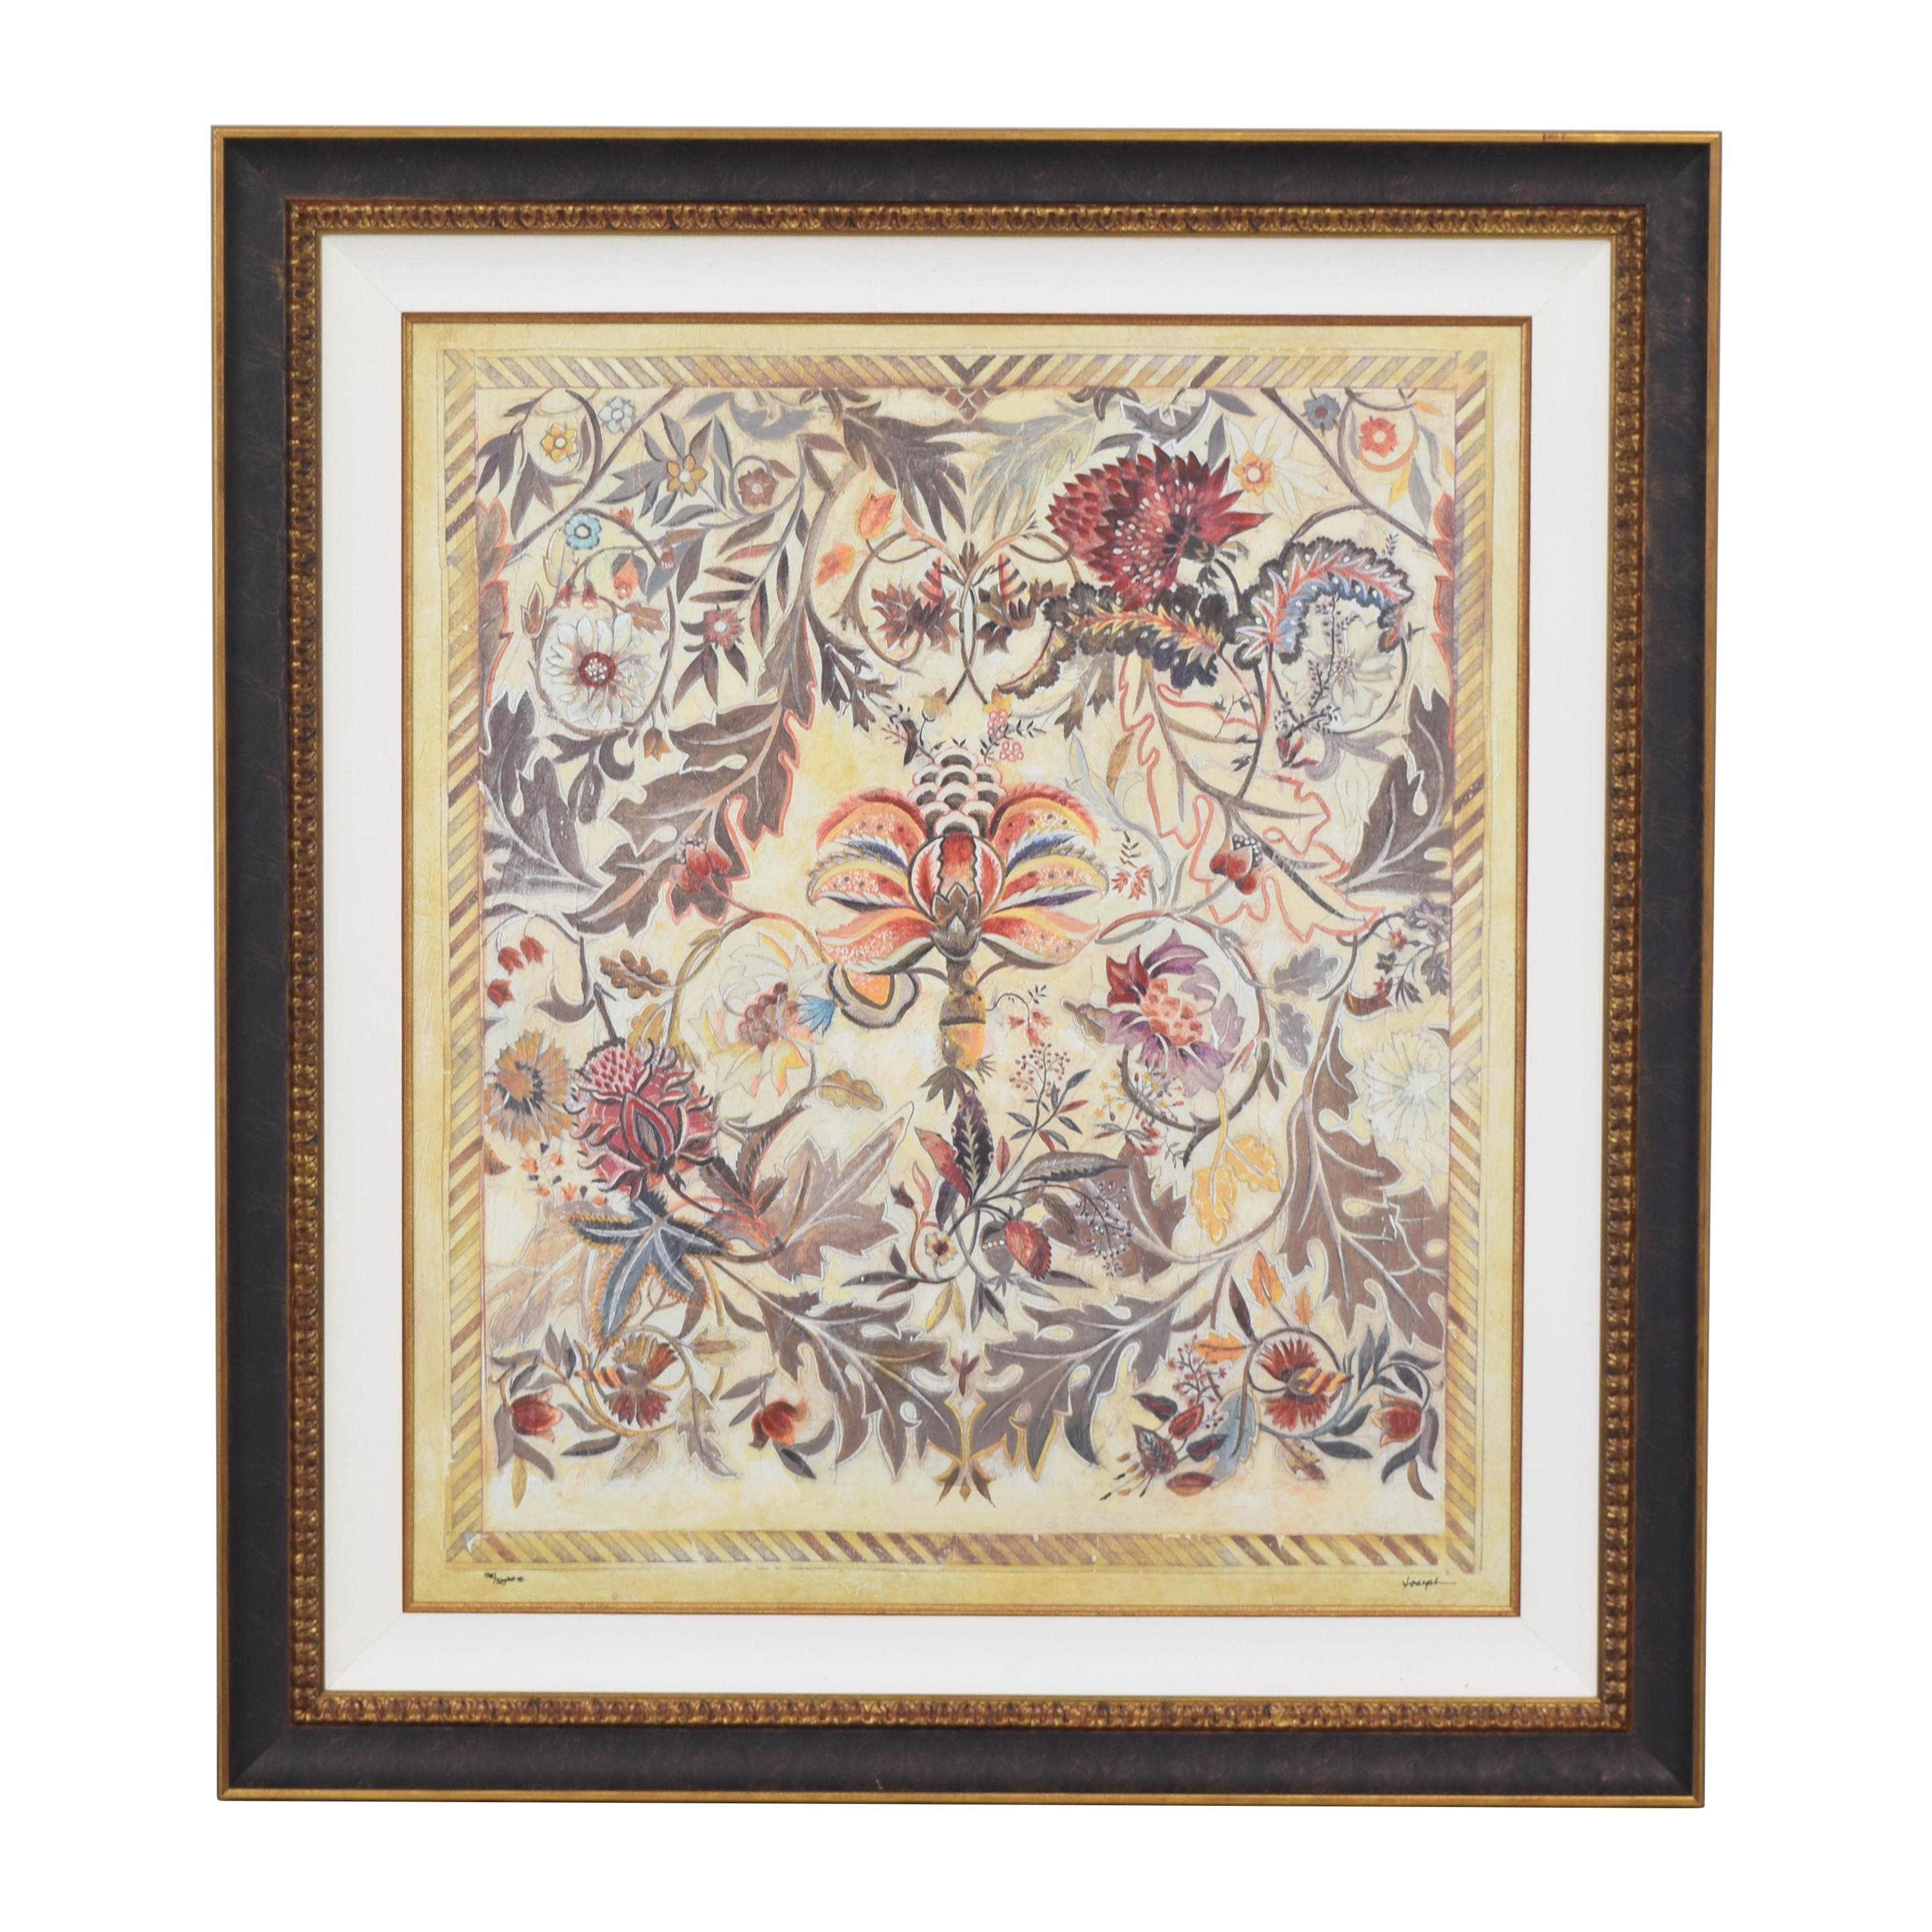 Ethan Allen Ethan Allen Garden Song Wall Art price